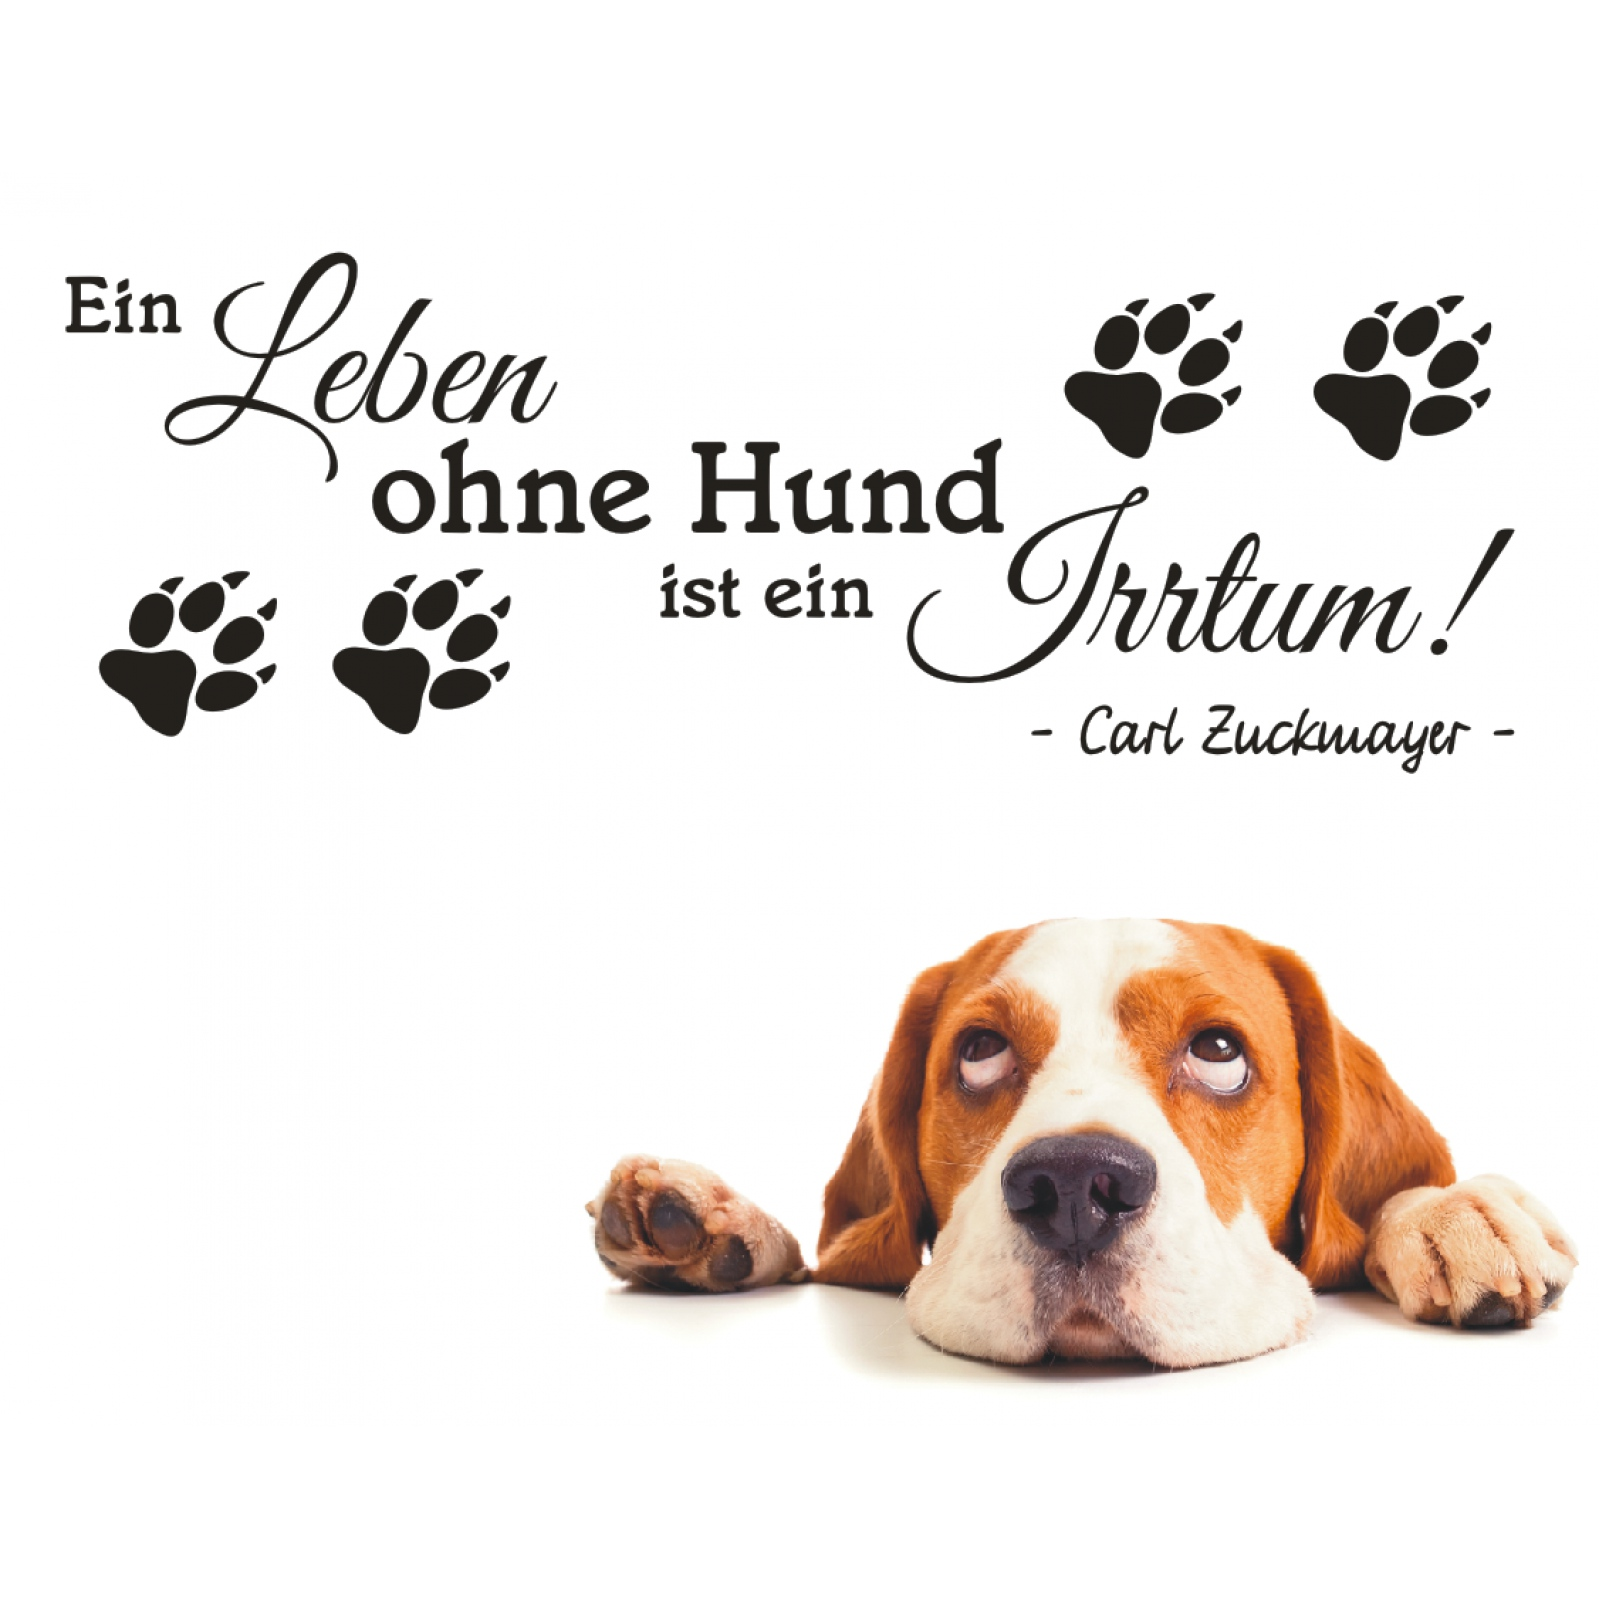 wandtattoo spruch ein leben ohne hund zitat wandsticker wandaufkleber sticker ebay. Black Bedroom Furniture Sets. Home Design Ideas